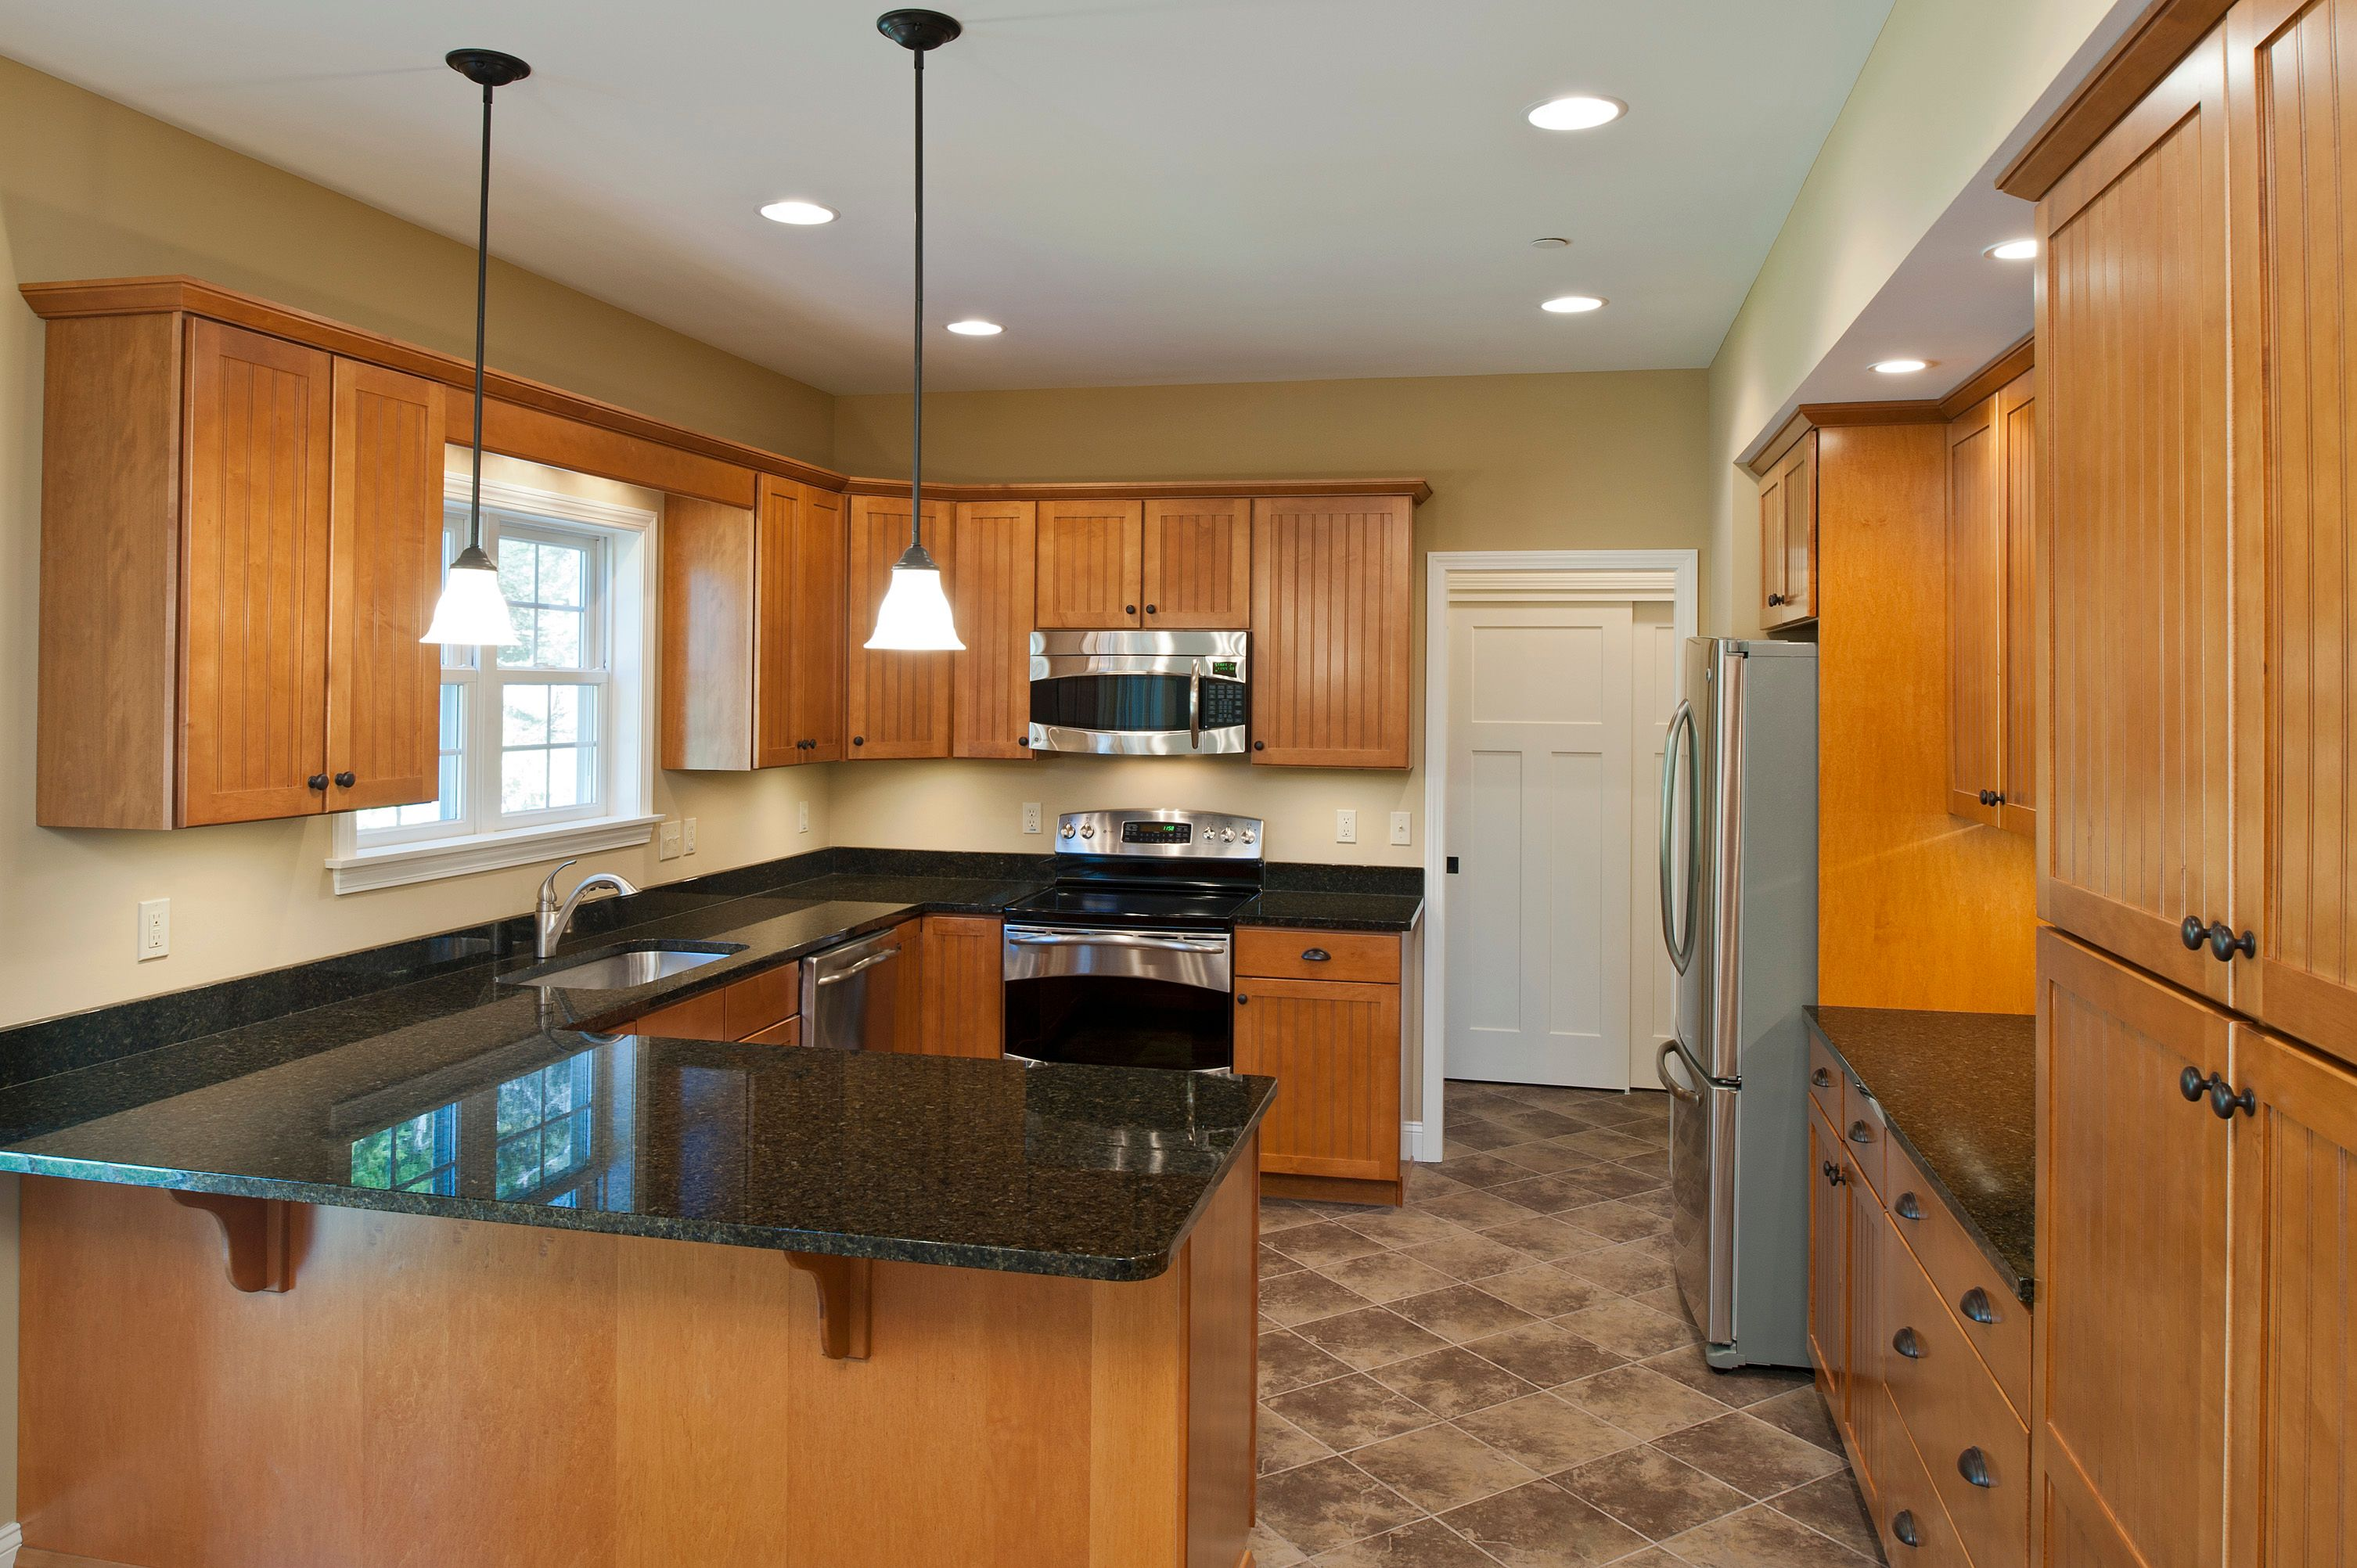 Kitchen featured in The Haverford By Keswick Pointe in Poconos, PA